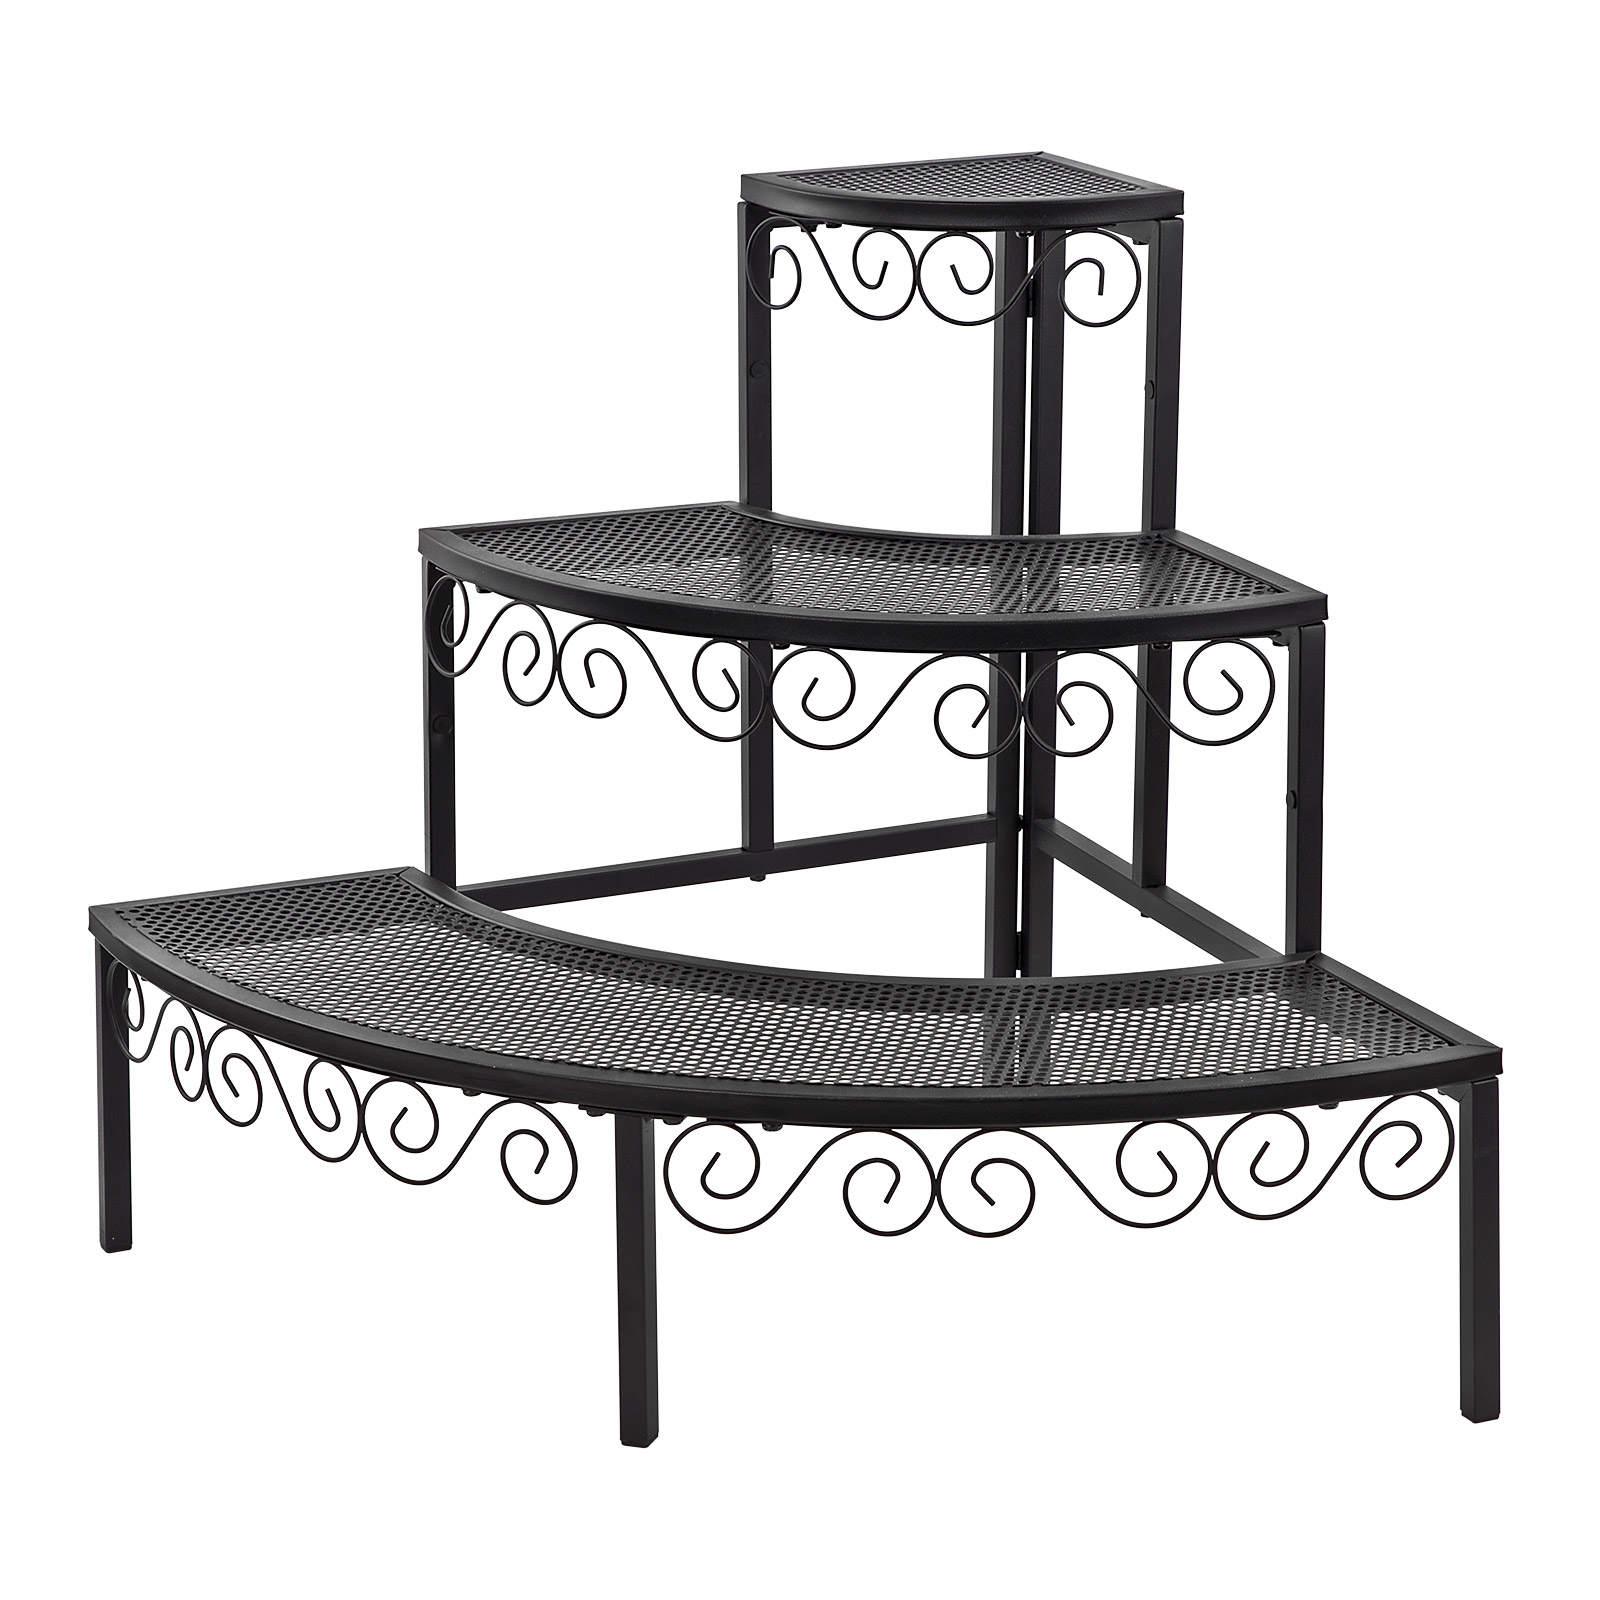 918453 pflanzentreppe deko blumentreppe treppe eckregal. Black Bedroom Furniture Sets. Home Design Ideas